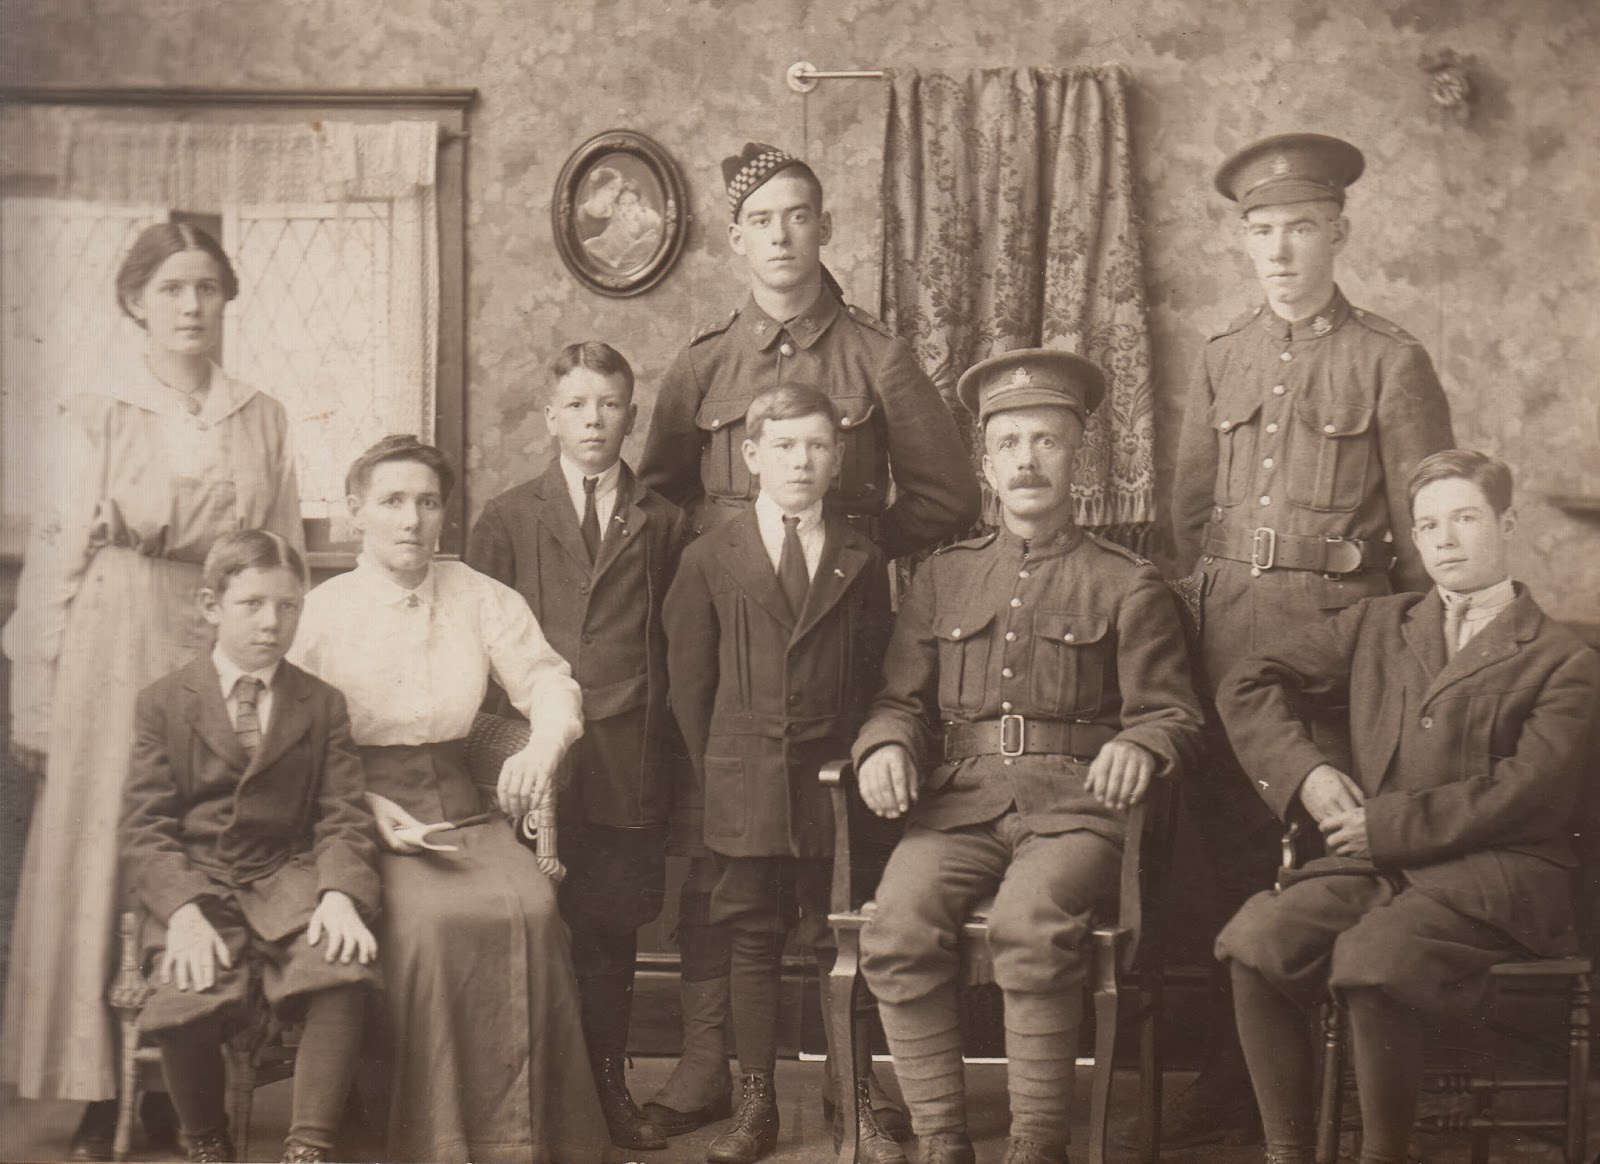 WW1. 4th Canadian Mounted Rifles 52 Ancestors: Sam Sandercock and His WW1 Tragedy